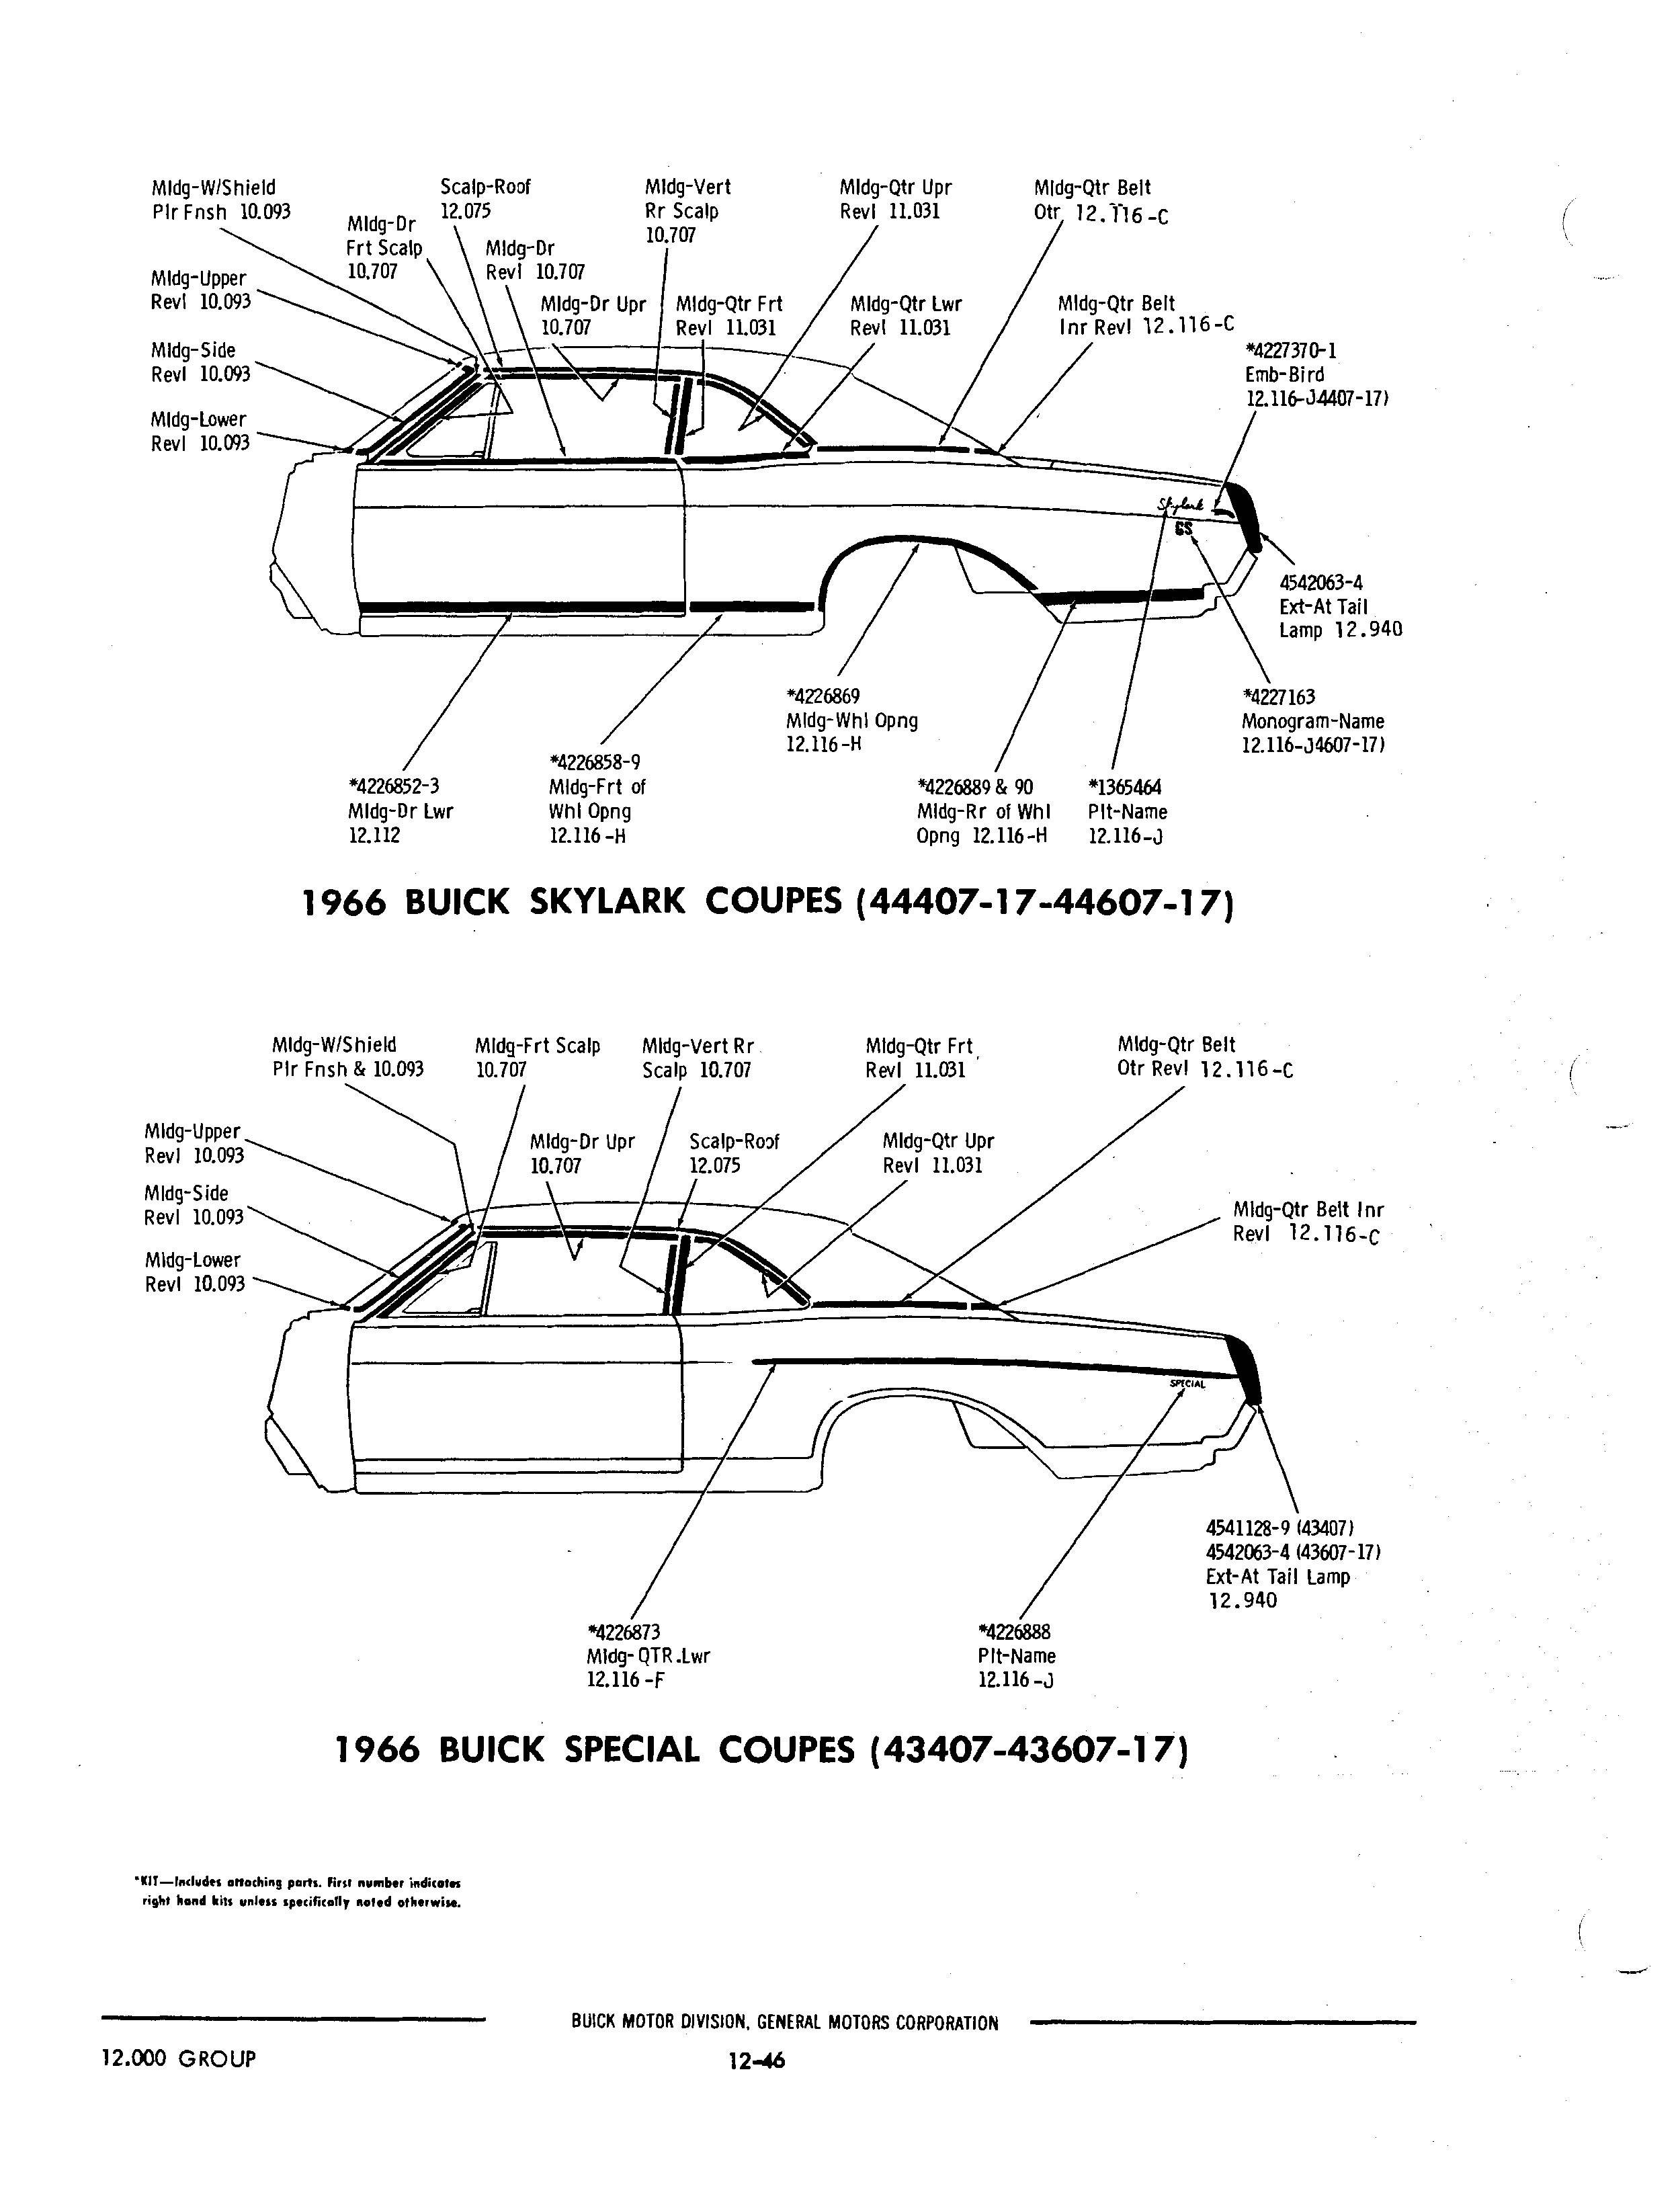 1946 dodge truck parts catalog imageresizertool com 2004 Buick LeSabre Wiring-Diagram Buick Rendezvous Wiring-Diagram